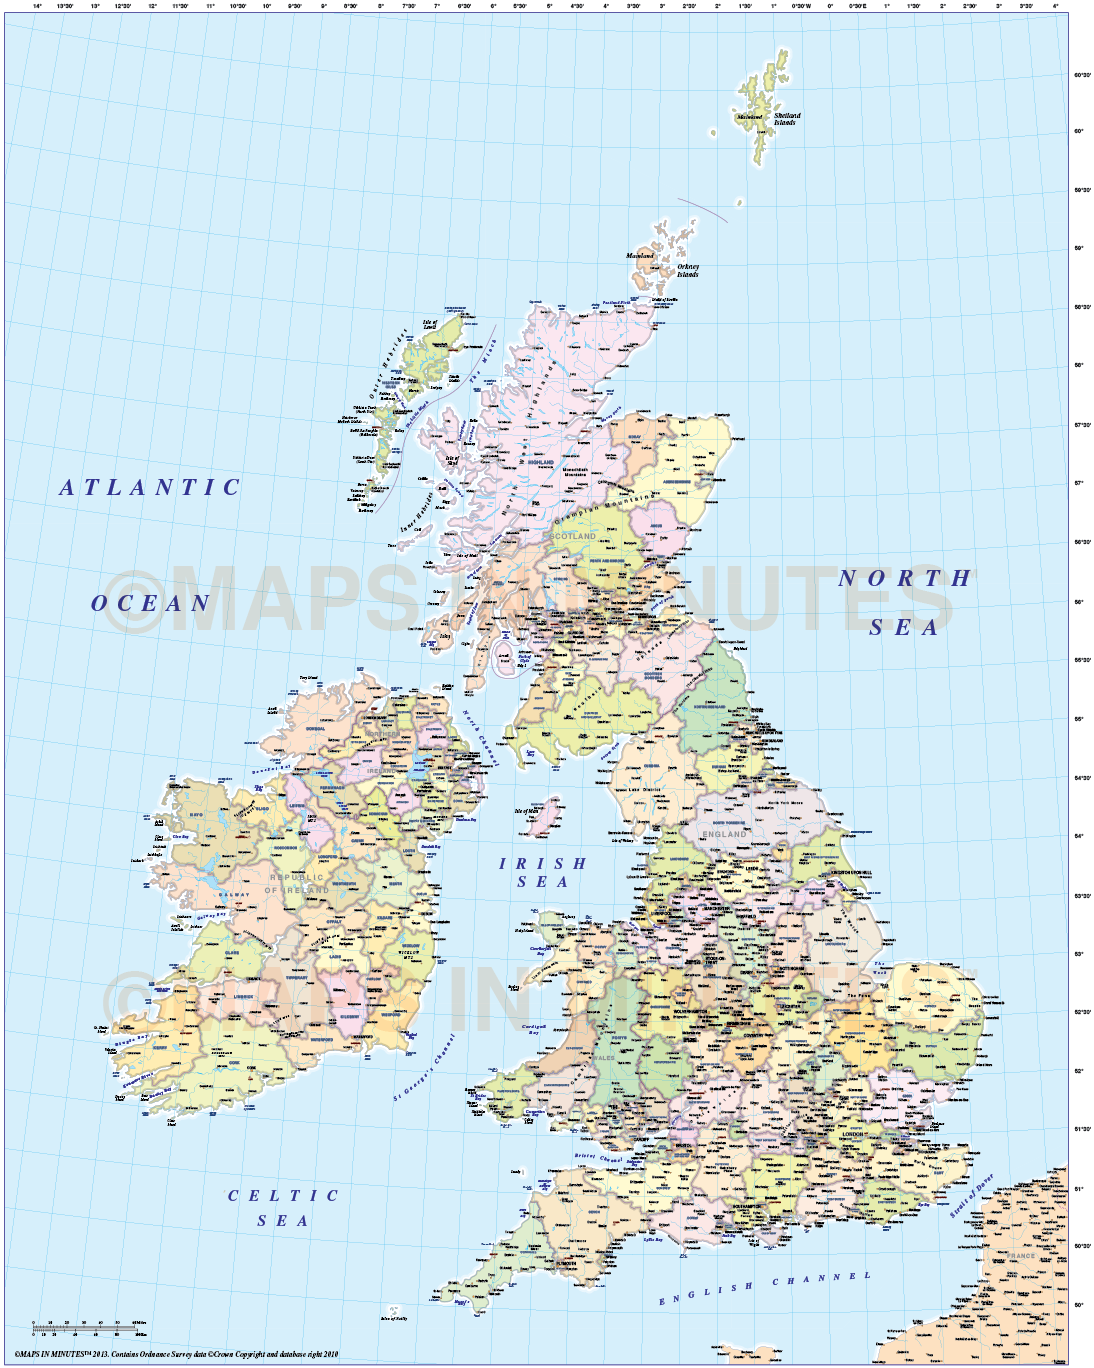 County Map Of England 2016.Adm British Isles County Region Admin Map 1 5m Scale Transverse